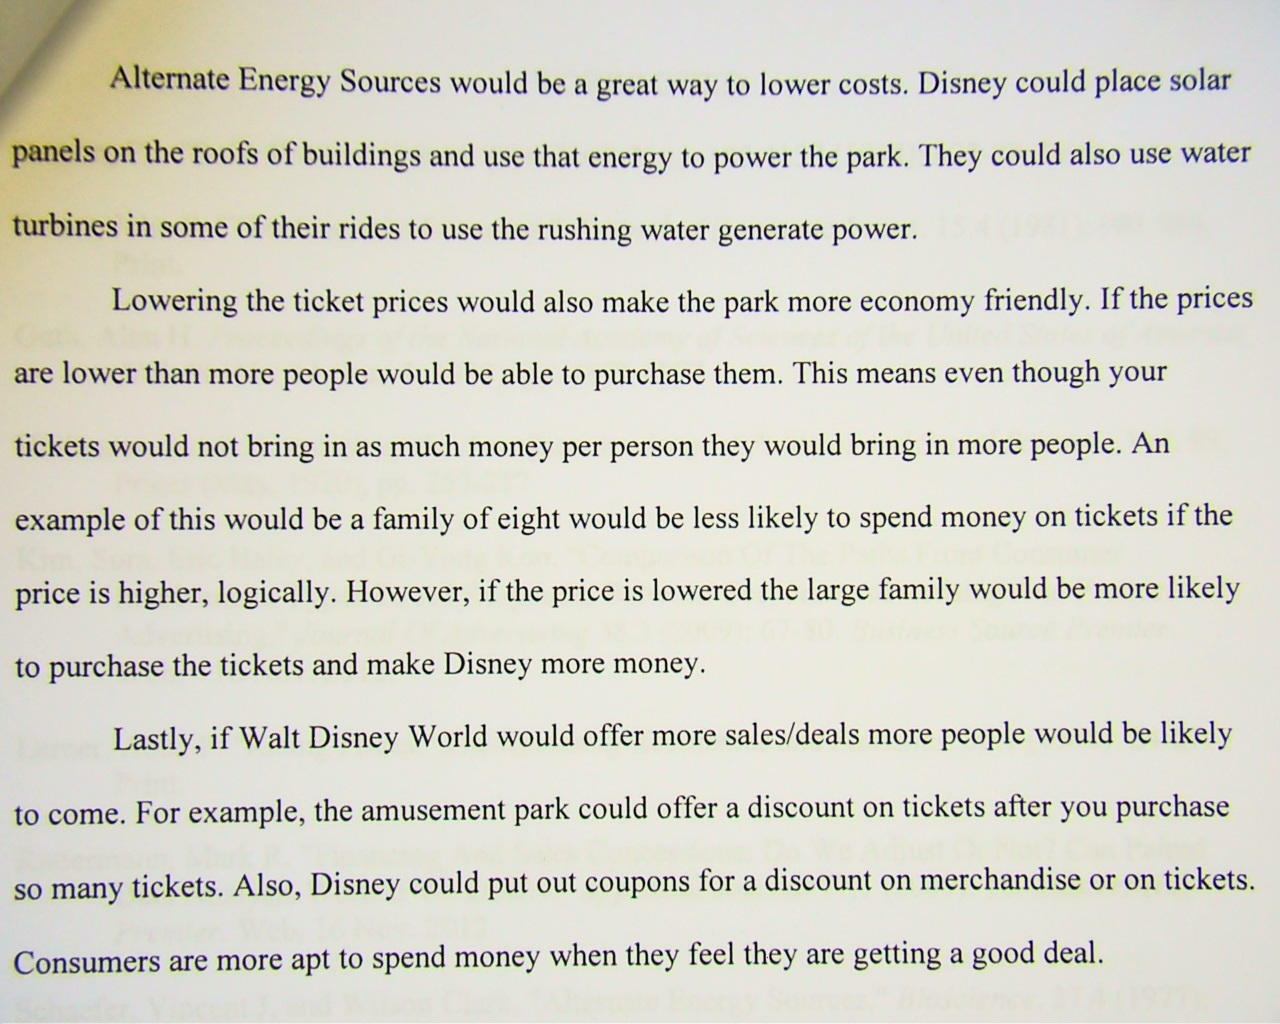 007 Satire Essay Example Student2bsample Beautiful Examples On Gun Control Questions Ideas Full